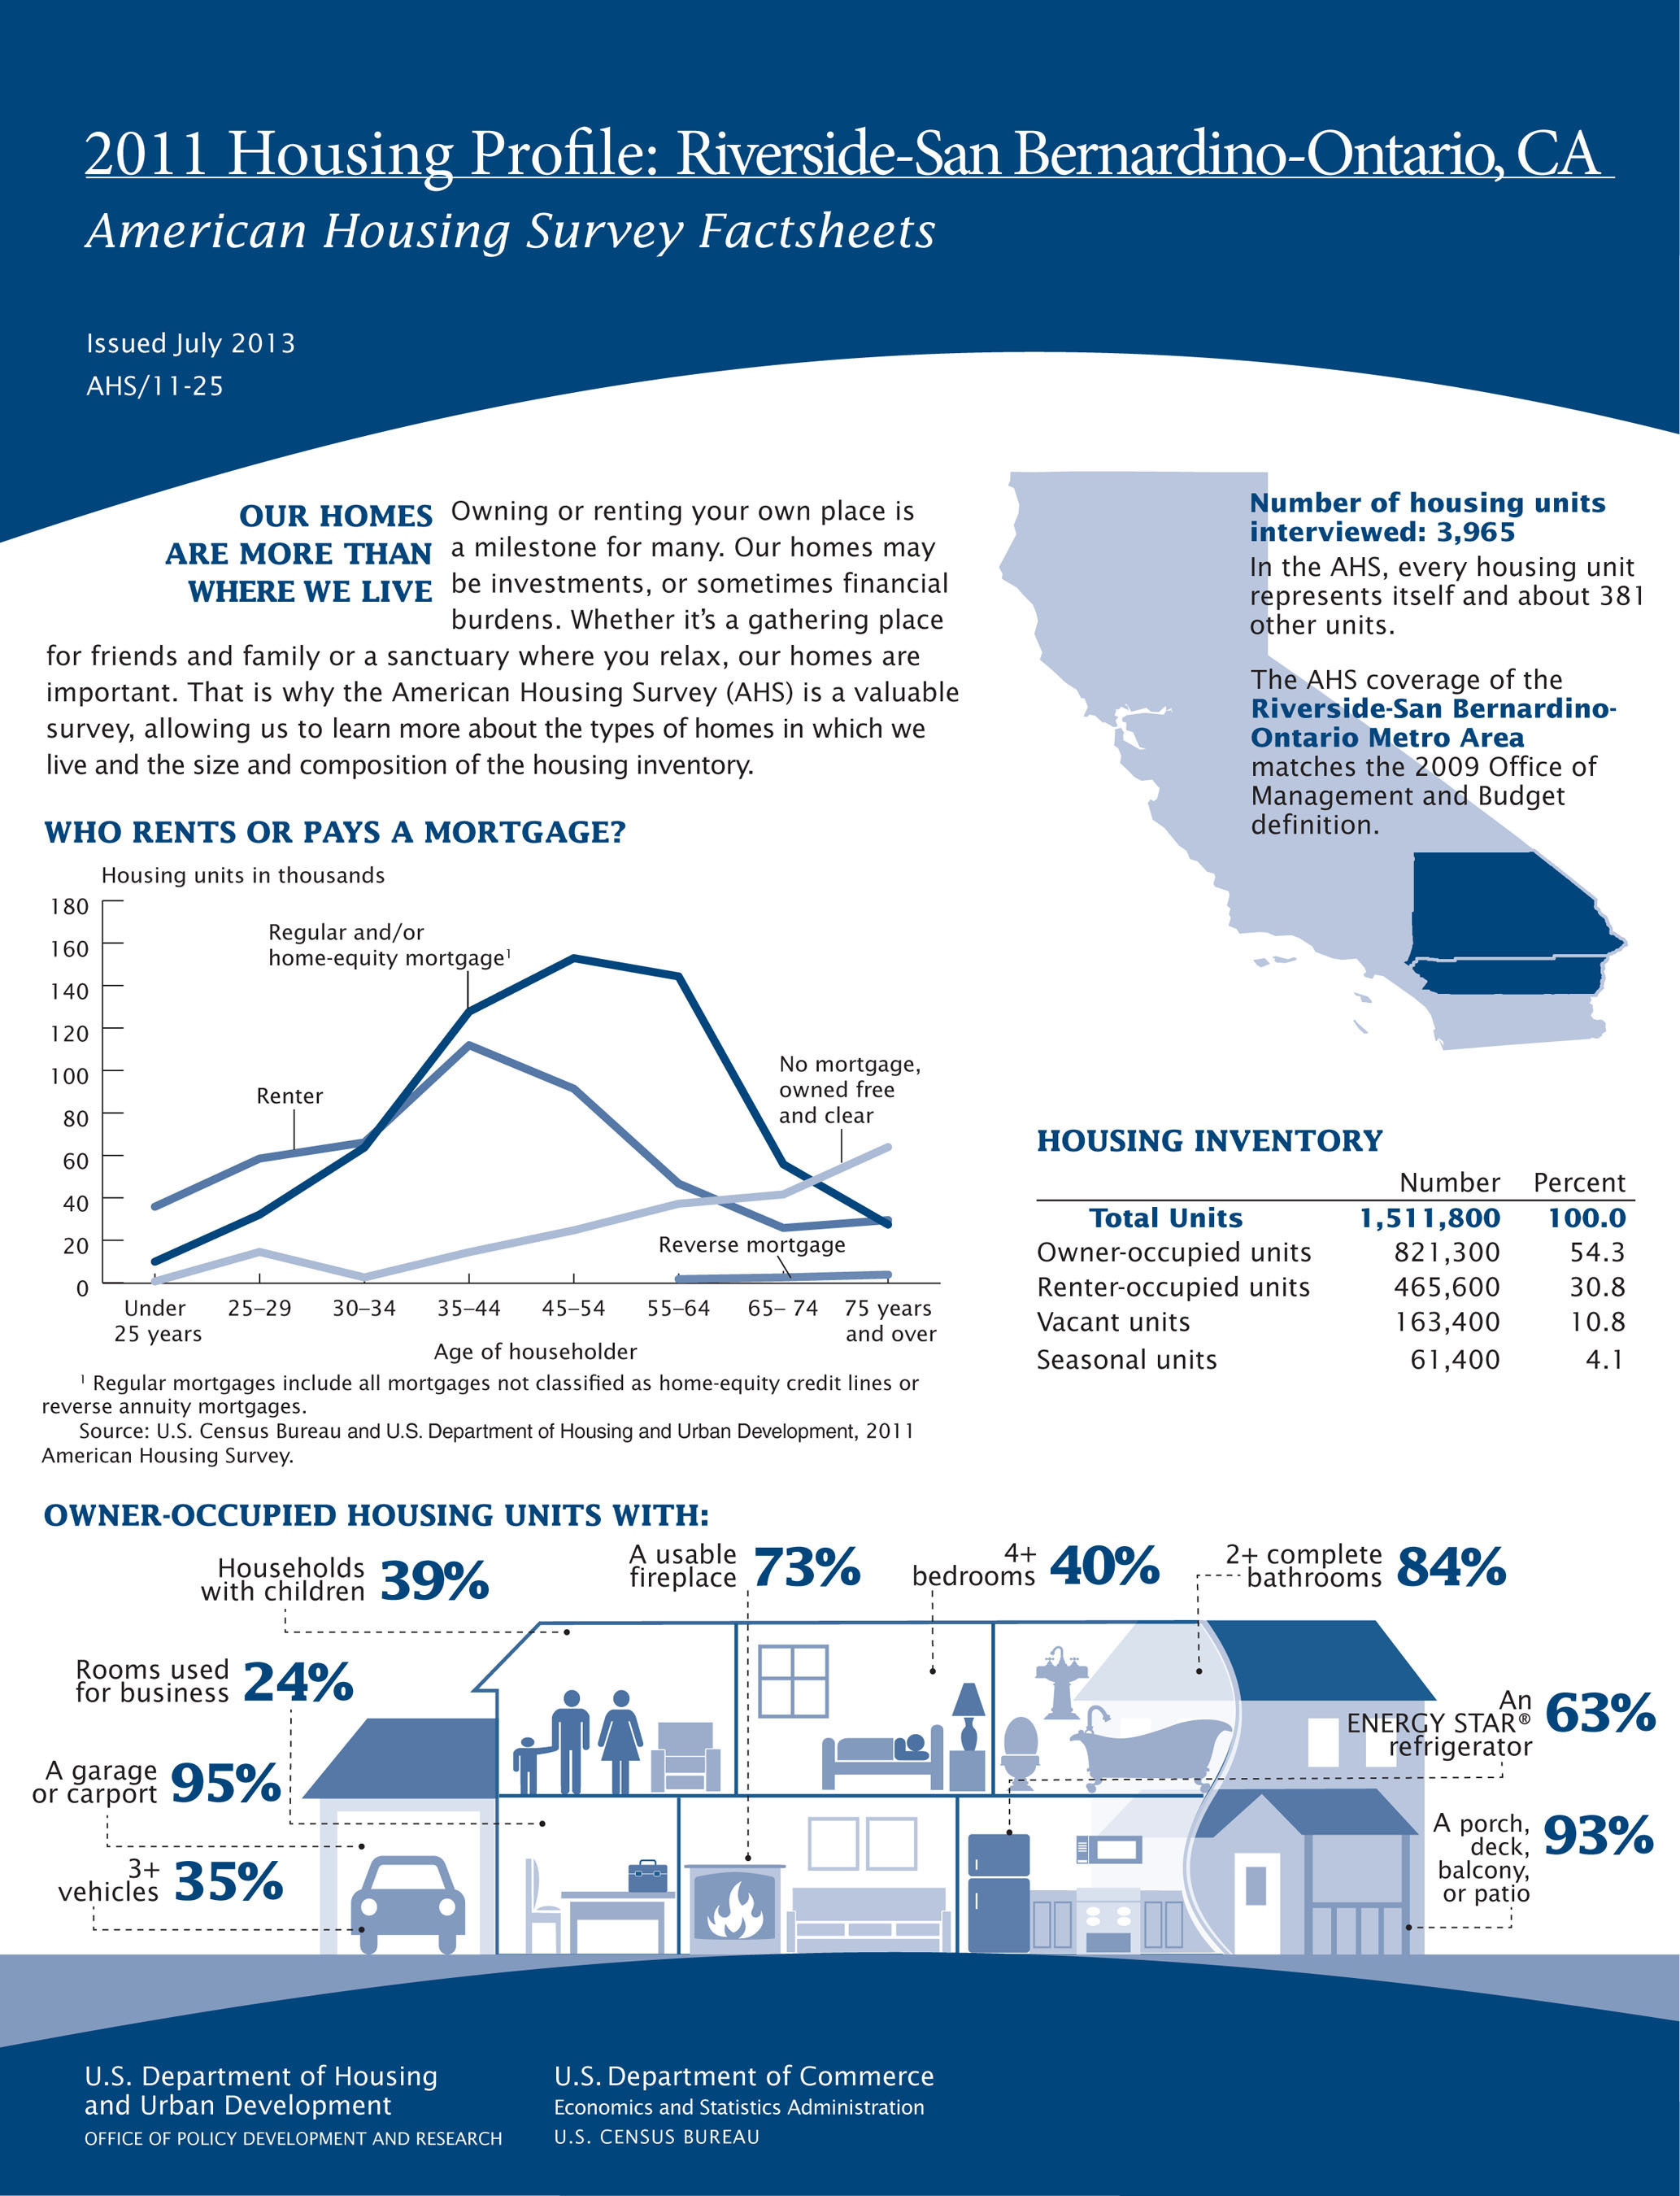 Homeowners in the Riverside-San Bernardino-Ontario, Calif., metro area paid a median of $171,000 for their homes, according to a 2011 American Housing Survey profile released today. The median purchase price of homes constructed in the past four years was higher at $309,000. Statistics come from the American Housing Survey, which is sponsored by the Department of Housing and Urban Development (HUD) and conducted by the U.S. Census Bureau. www.census.gov.  (PRNewsFoto/U.S. Census Bureau)